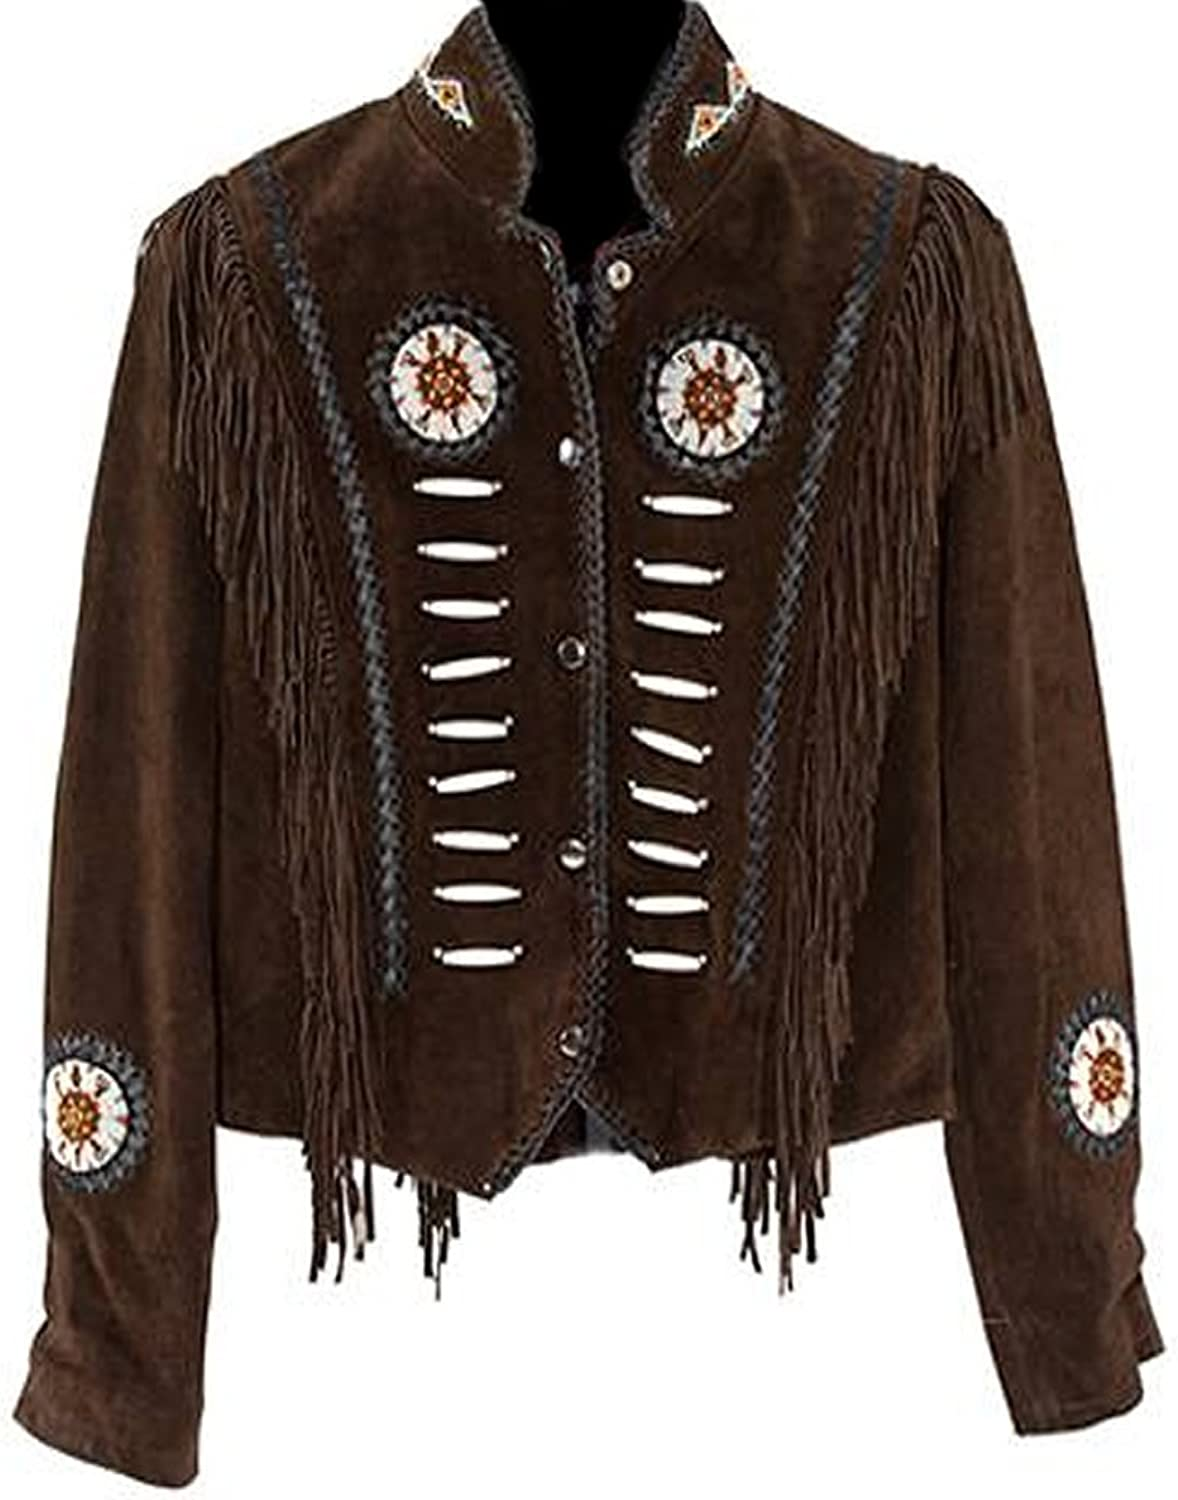 Classyak Western Suede Leather Jacket with Beads, Fringes and Bones, Xs4xl